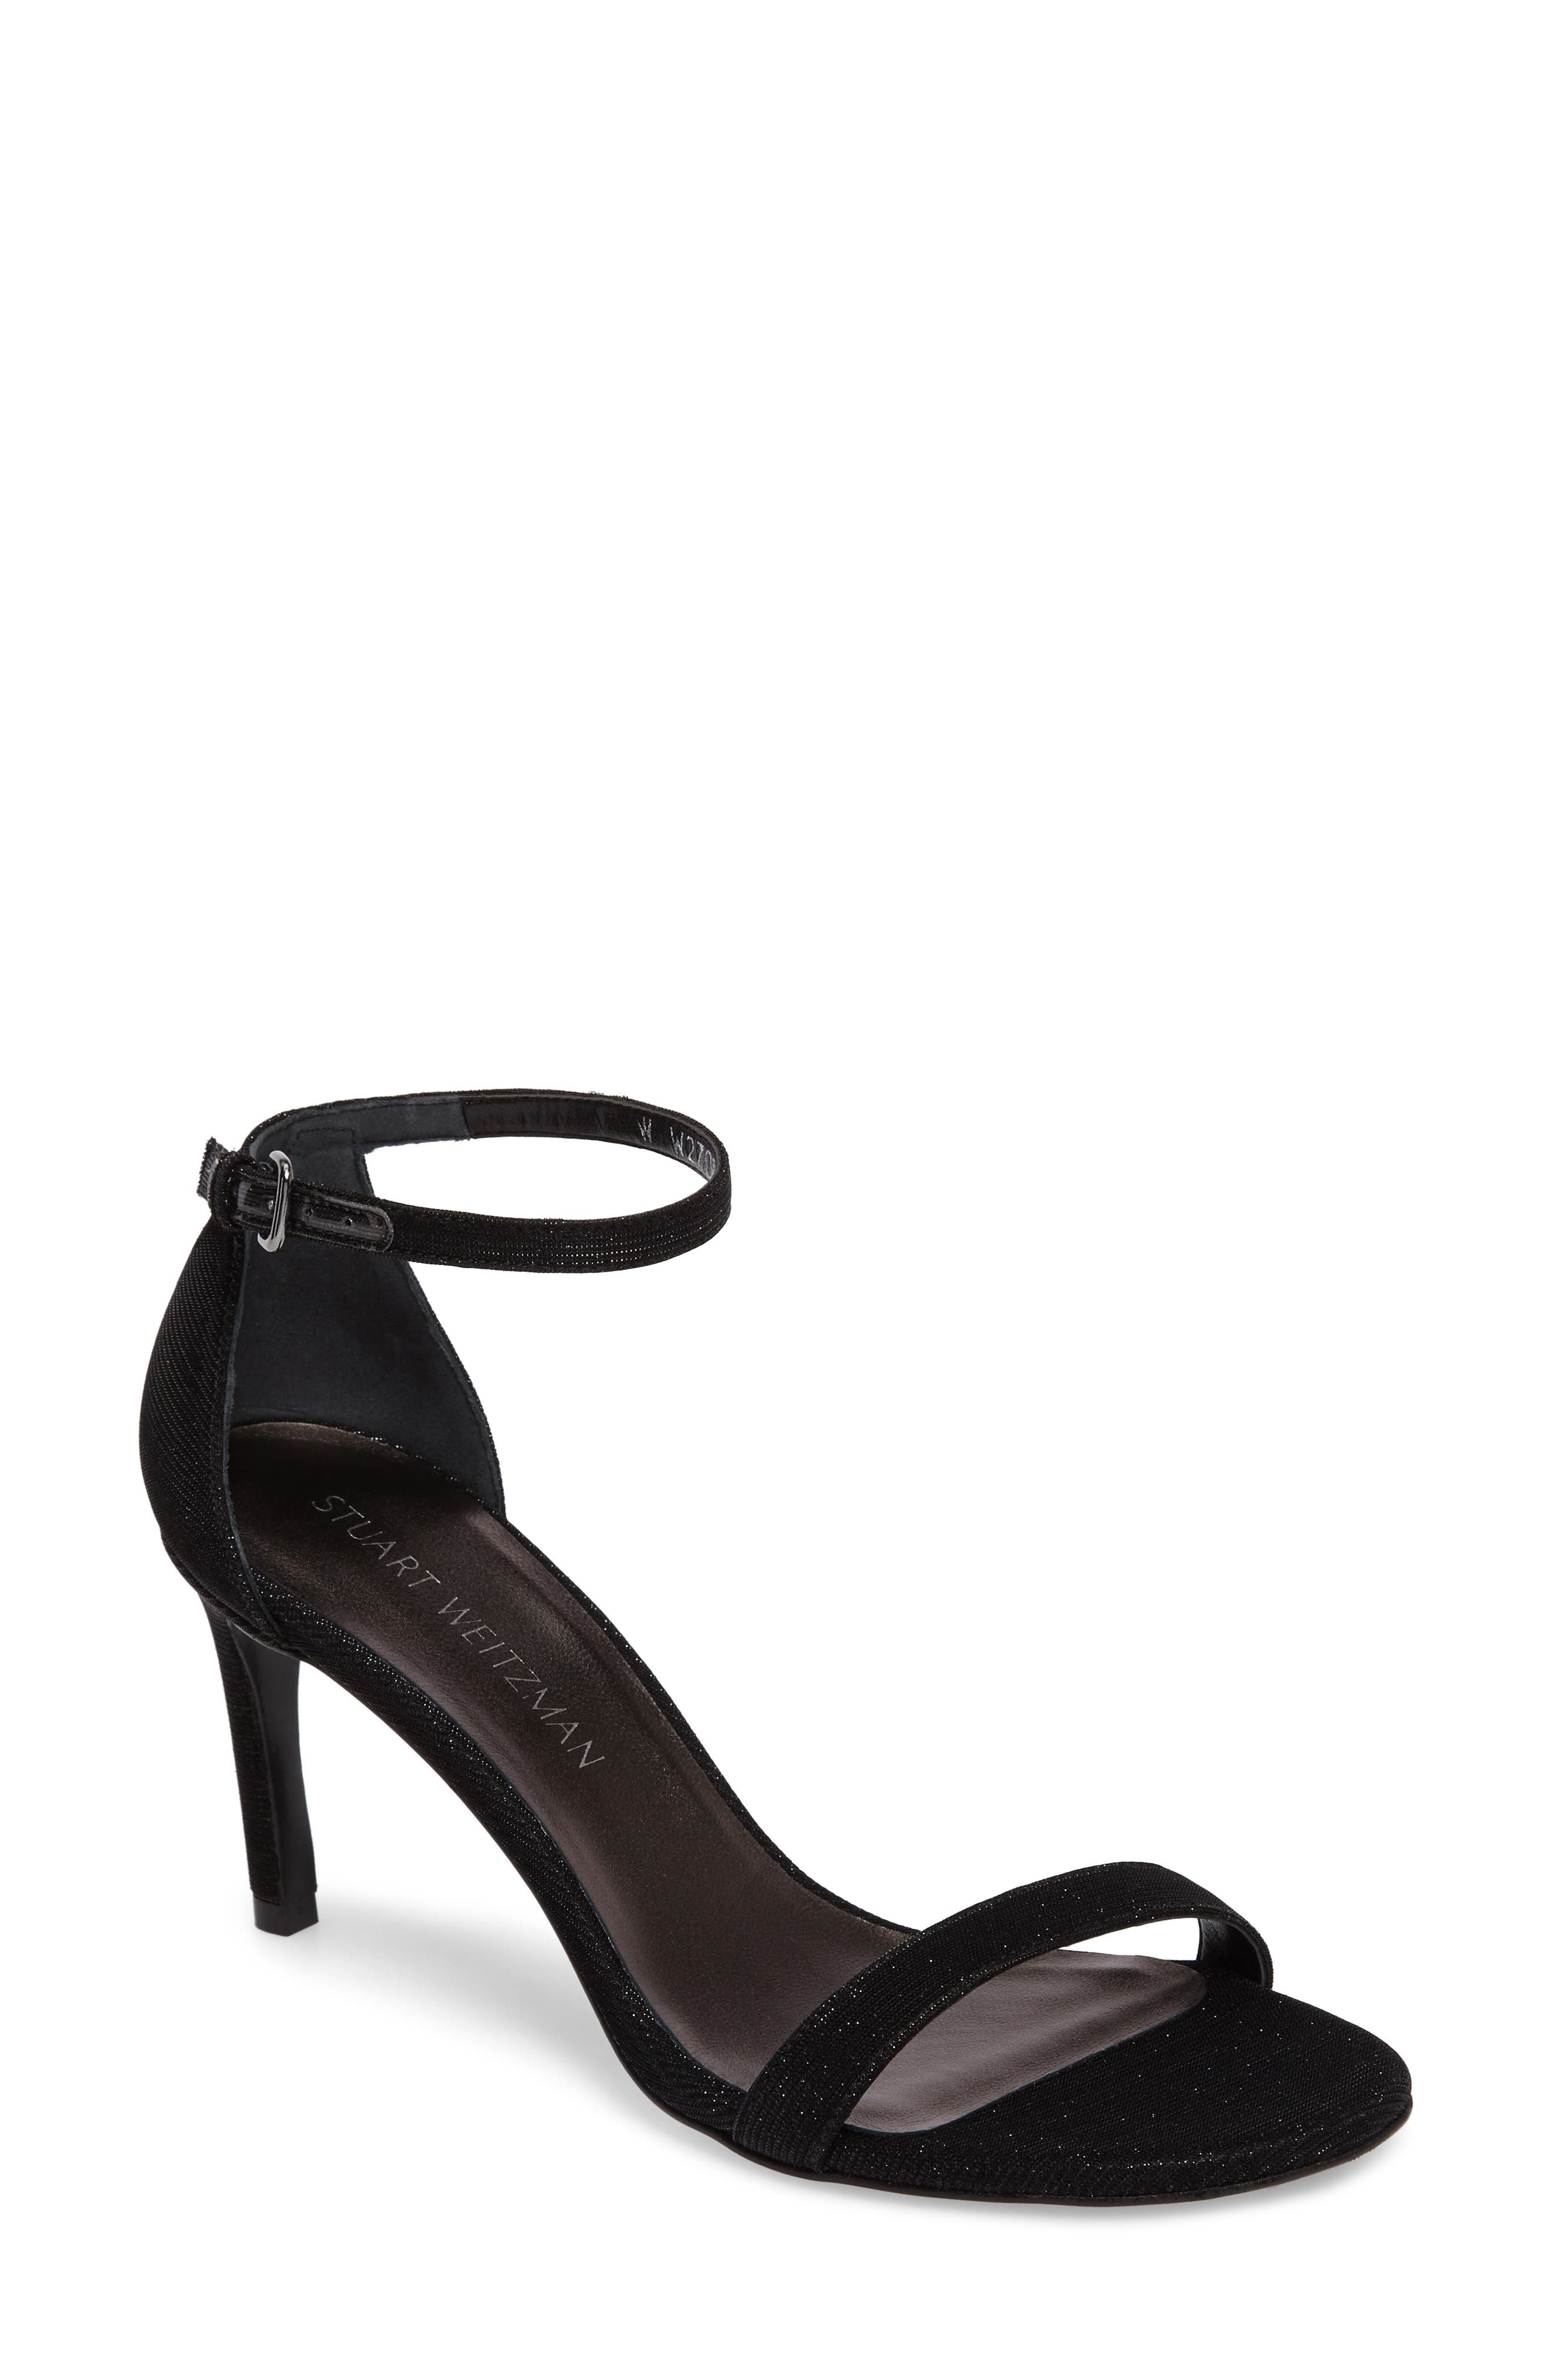 'Nunaked' Leather Ankle Strap Sandal,                         Main,                         color, Nero Nocturn Nappa